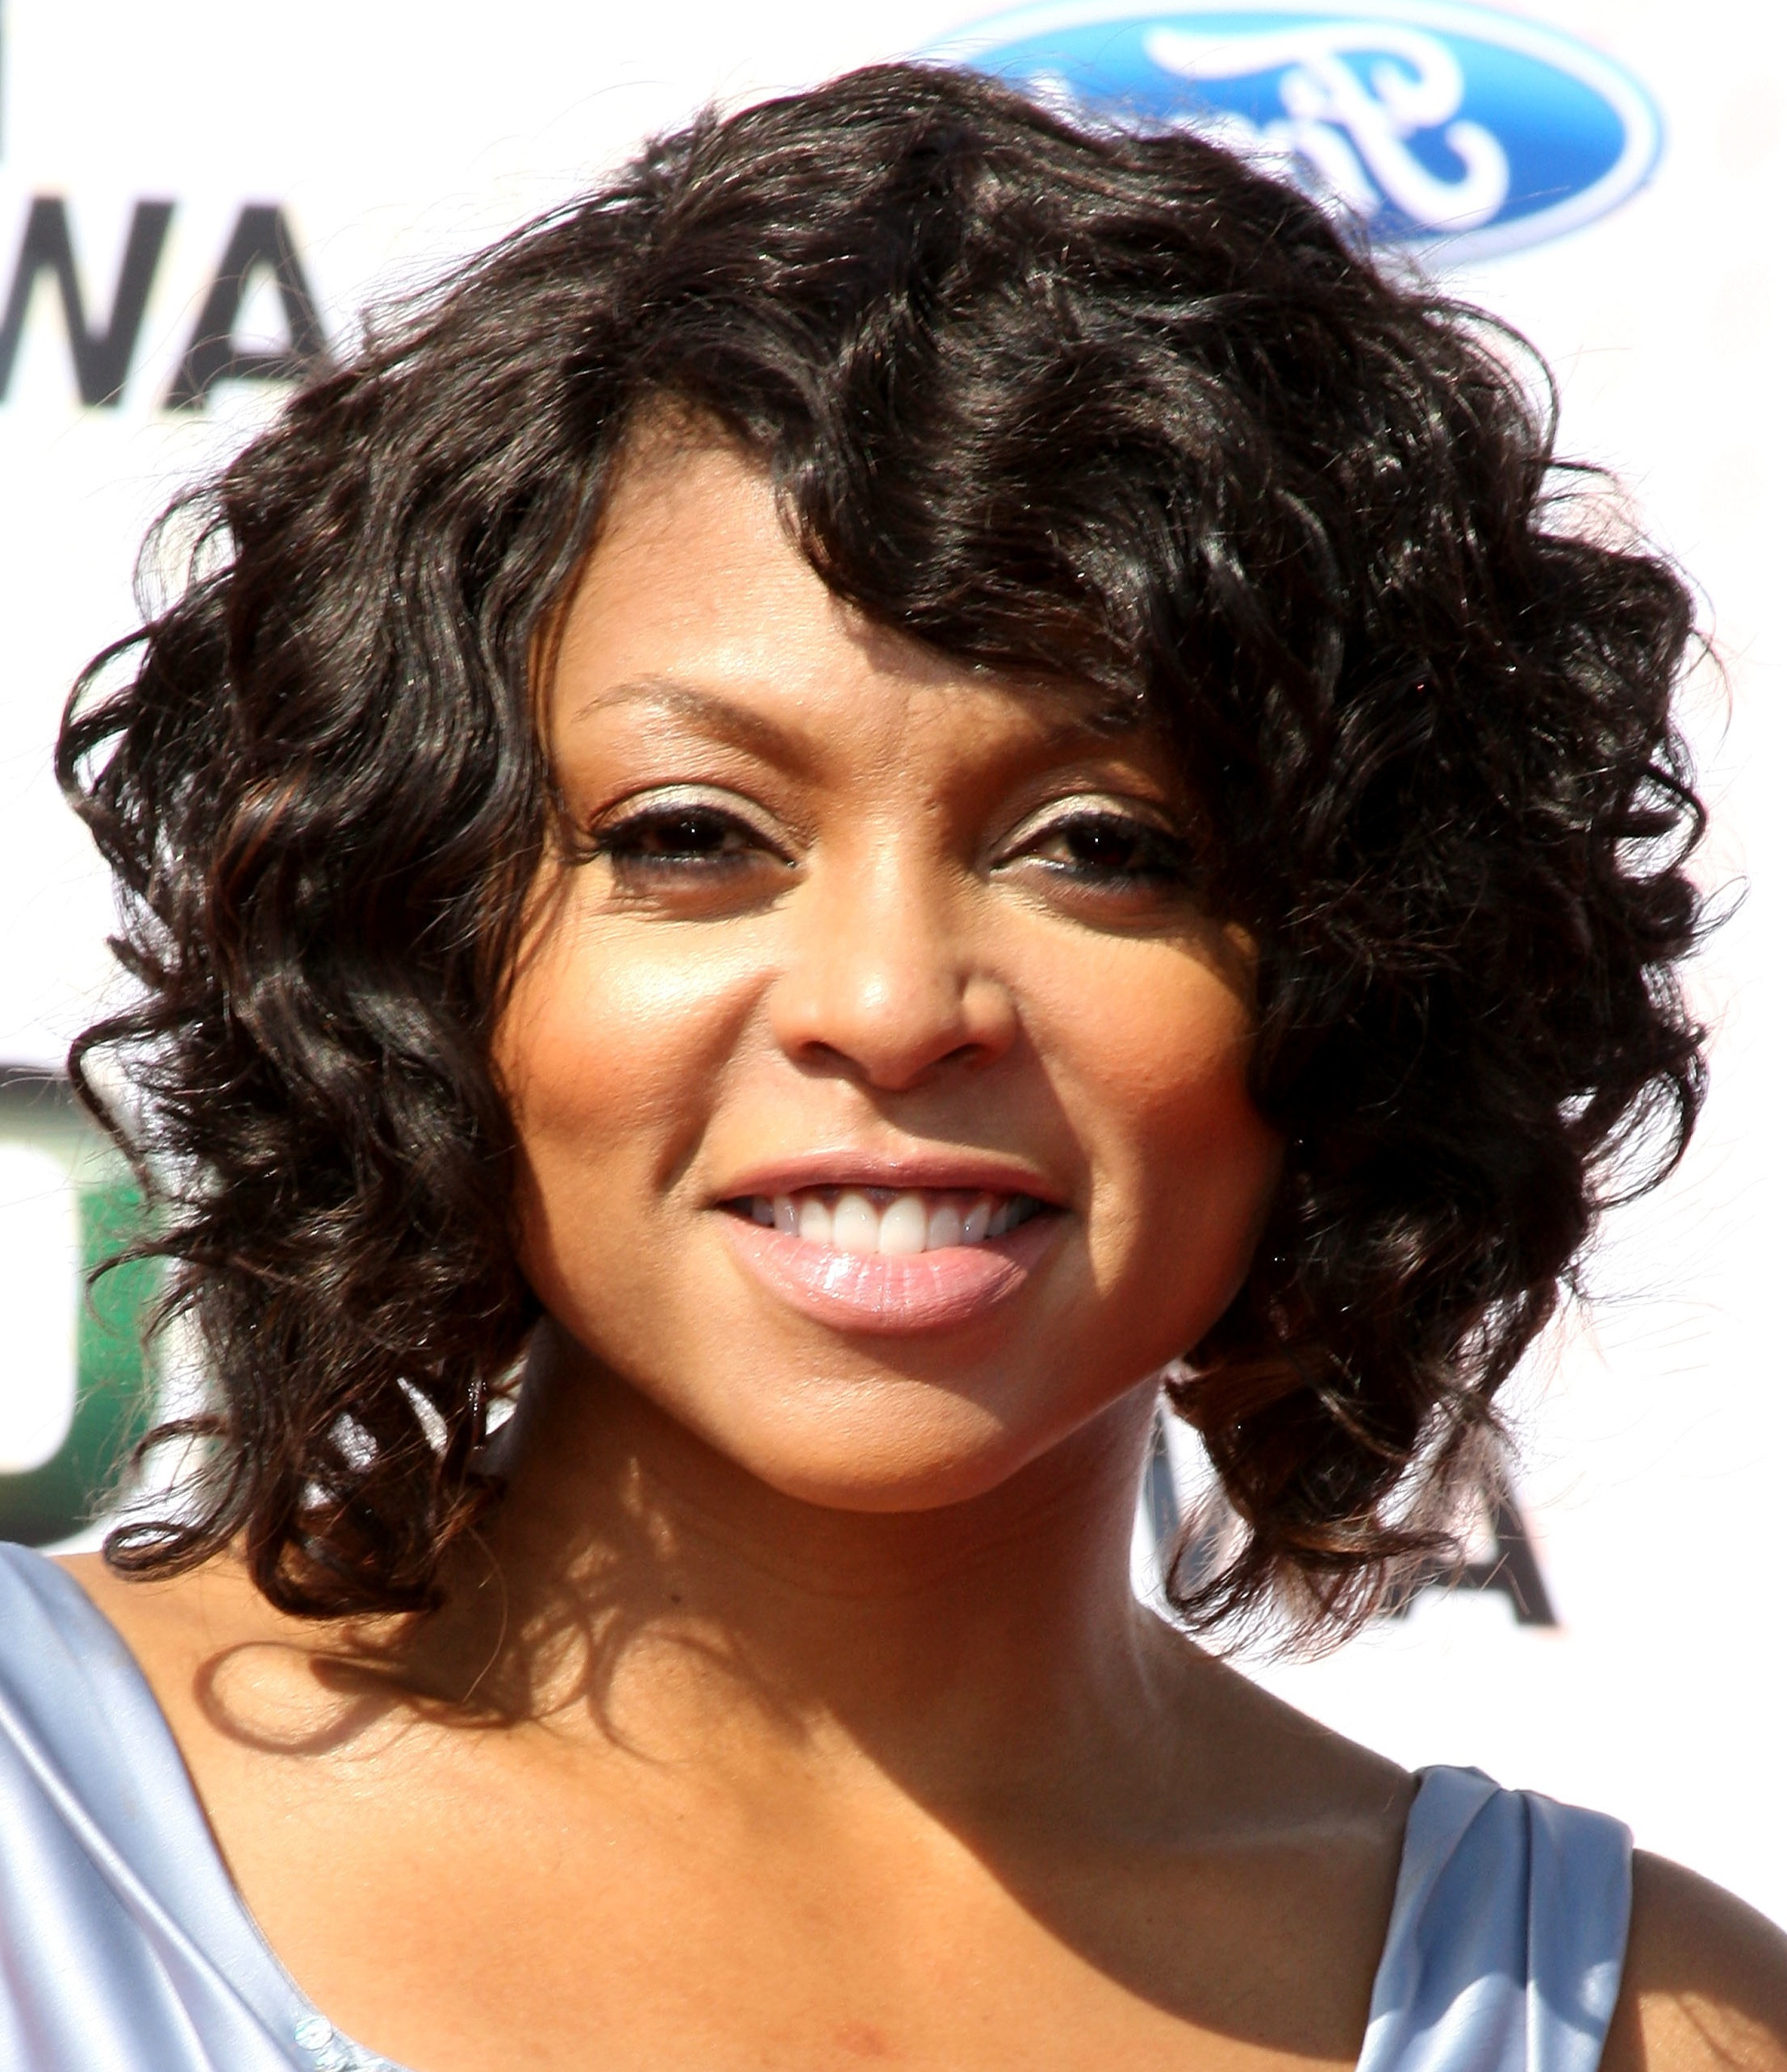 Short Curly Hairstyles For Black Women With Round Faces – Hairstyle Throughout Short Haircuts For Round Faces Black Hair (View 19 of 25)